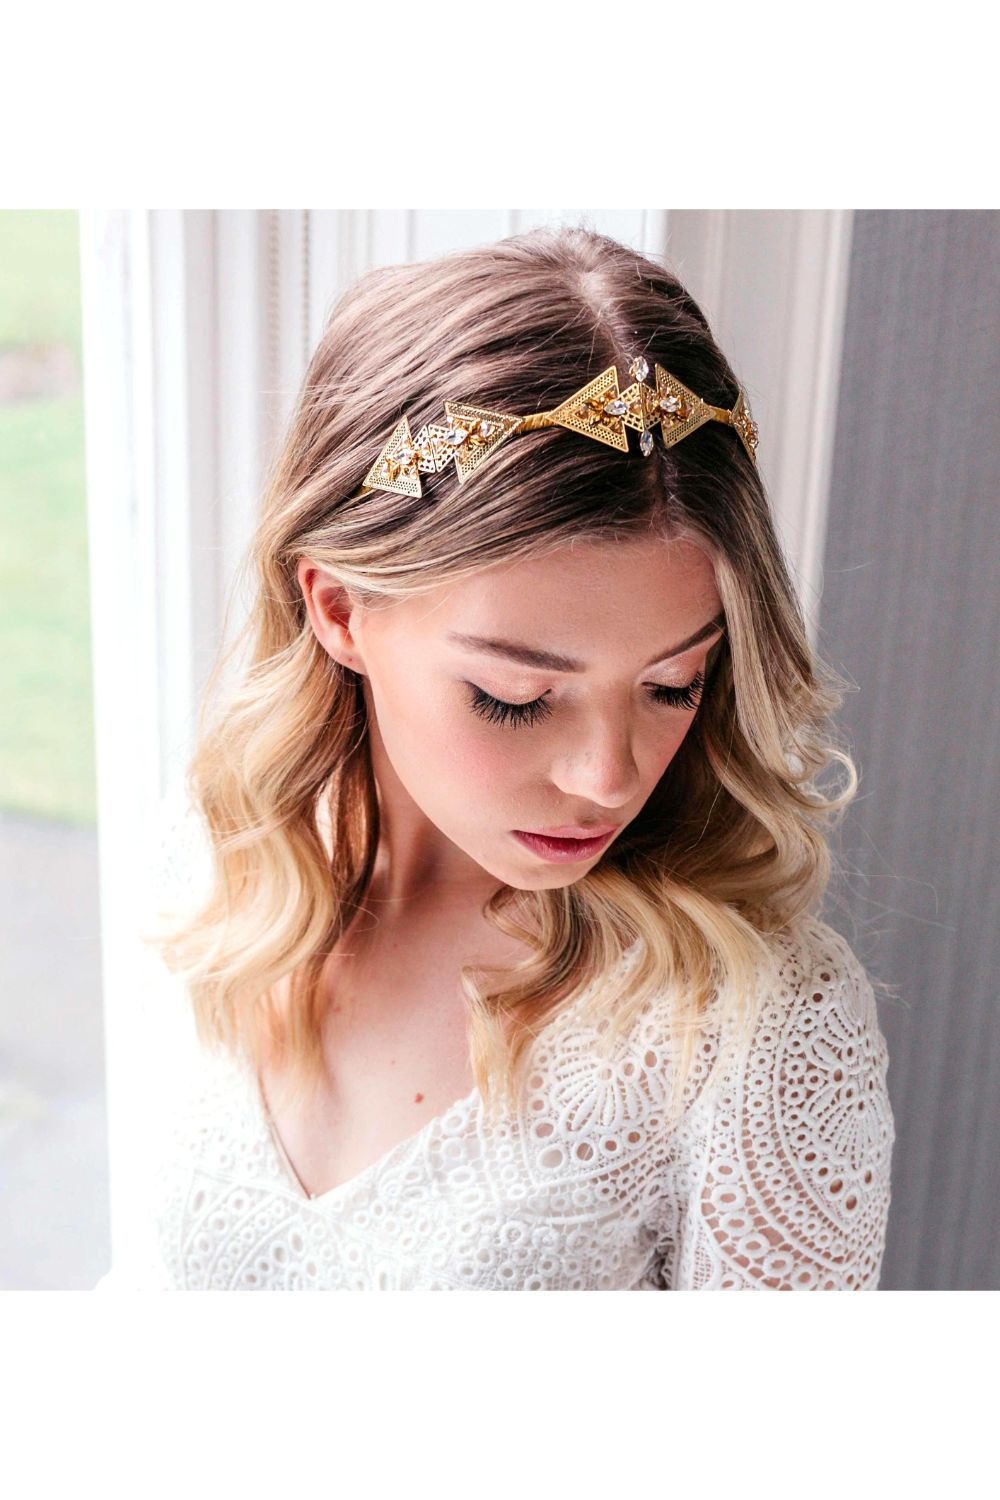 Hair Inspiration Lets See Some Pictures Of Updos With Cage Veils Weddingbee Vintage Wedding Hair Vintage Glam Wedding Wedding Hairstyles